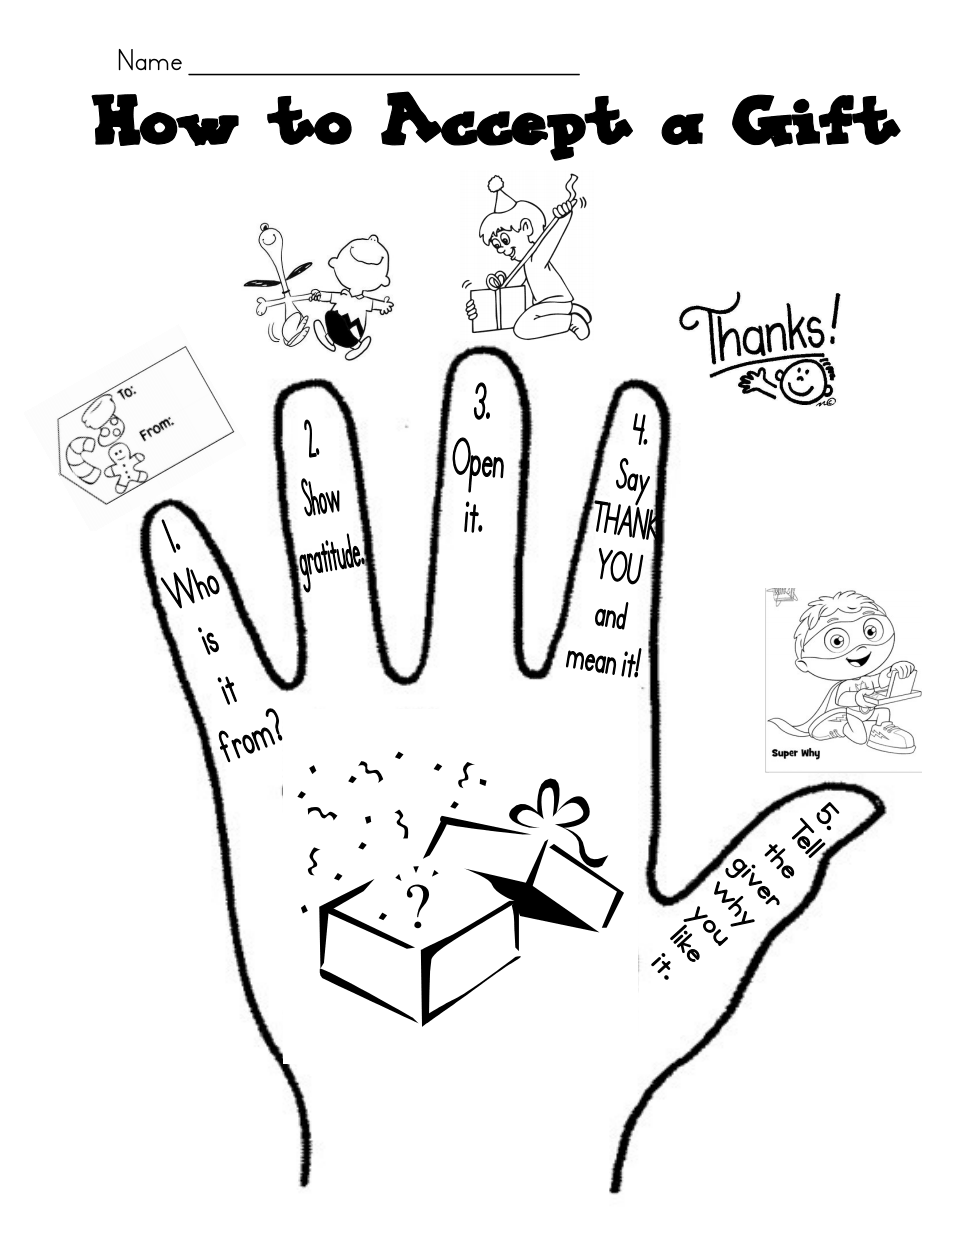 How to Accept a Gift.pdf Gifted lessons, School